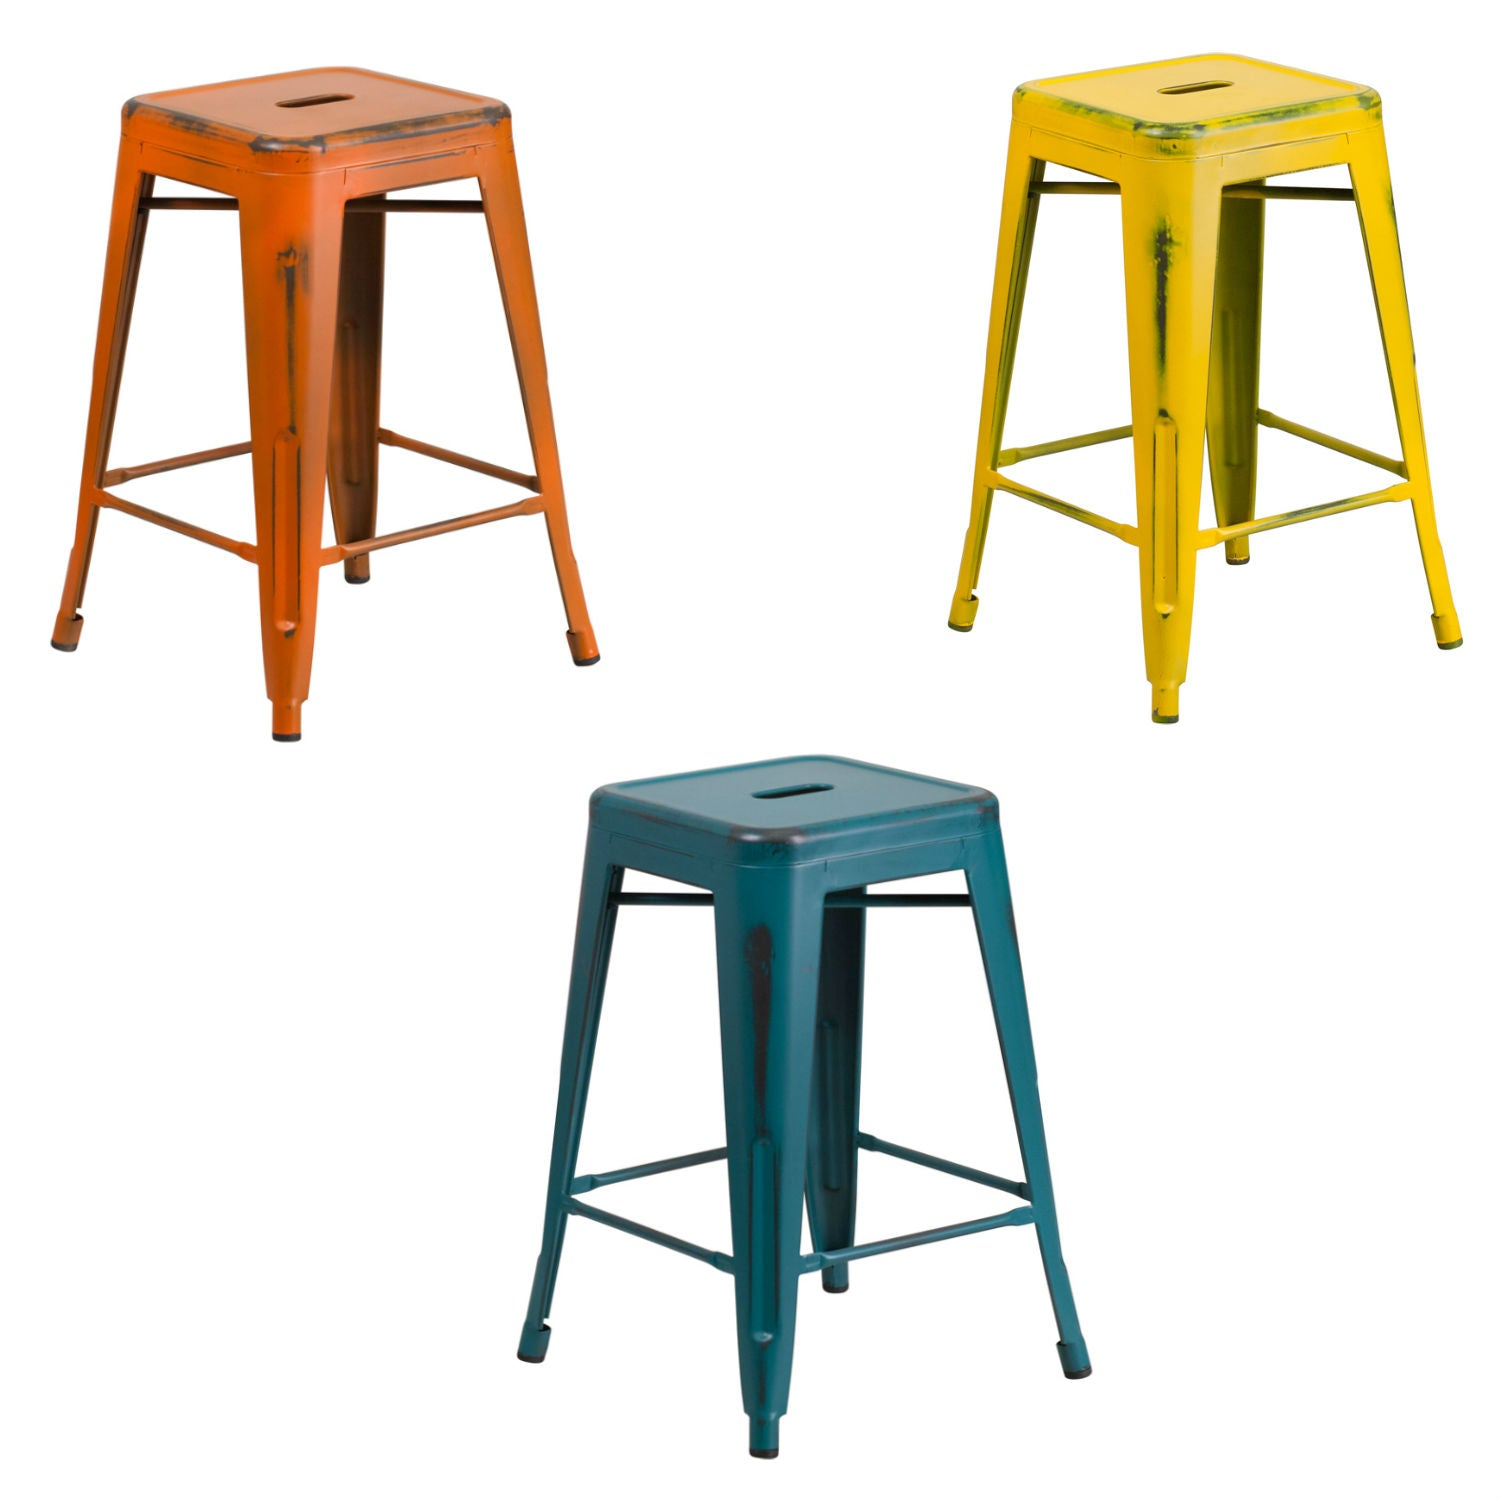 Flash Furniture 24'' High Backless Distressed Orange, Yellow and Kelly Blue-Teal Metal Indoor-Outdoor Counter Height Stool